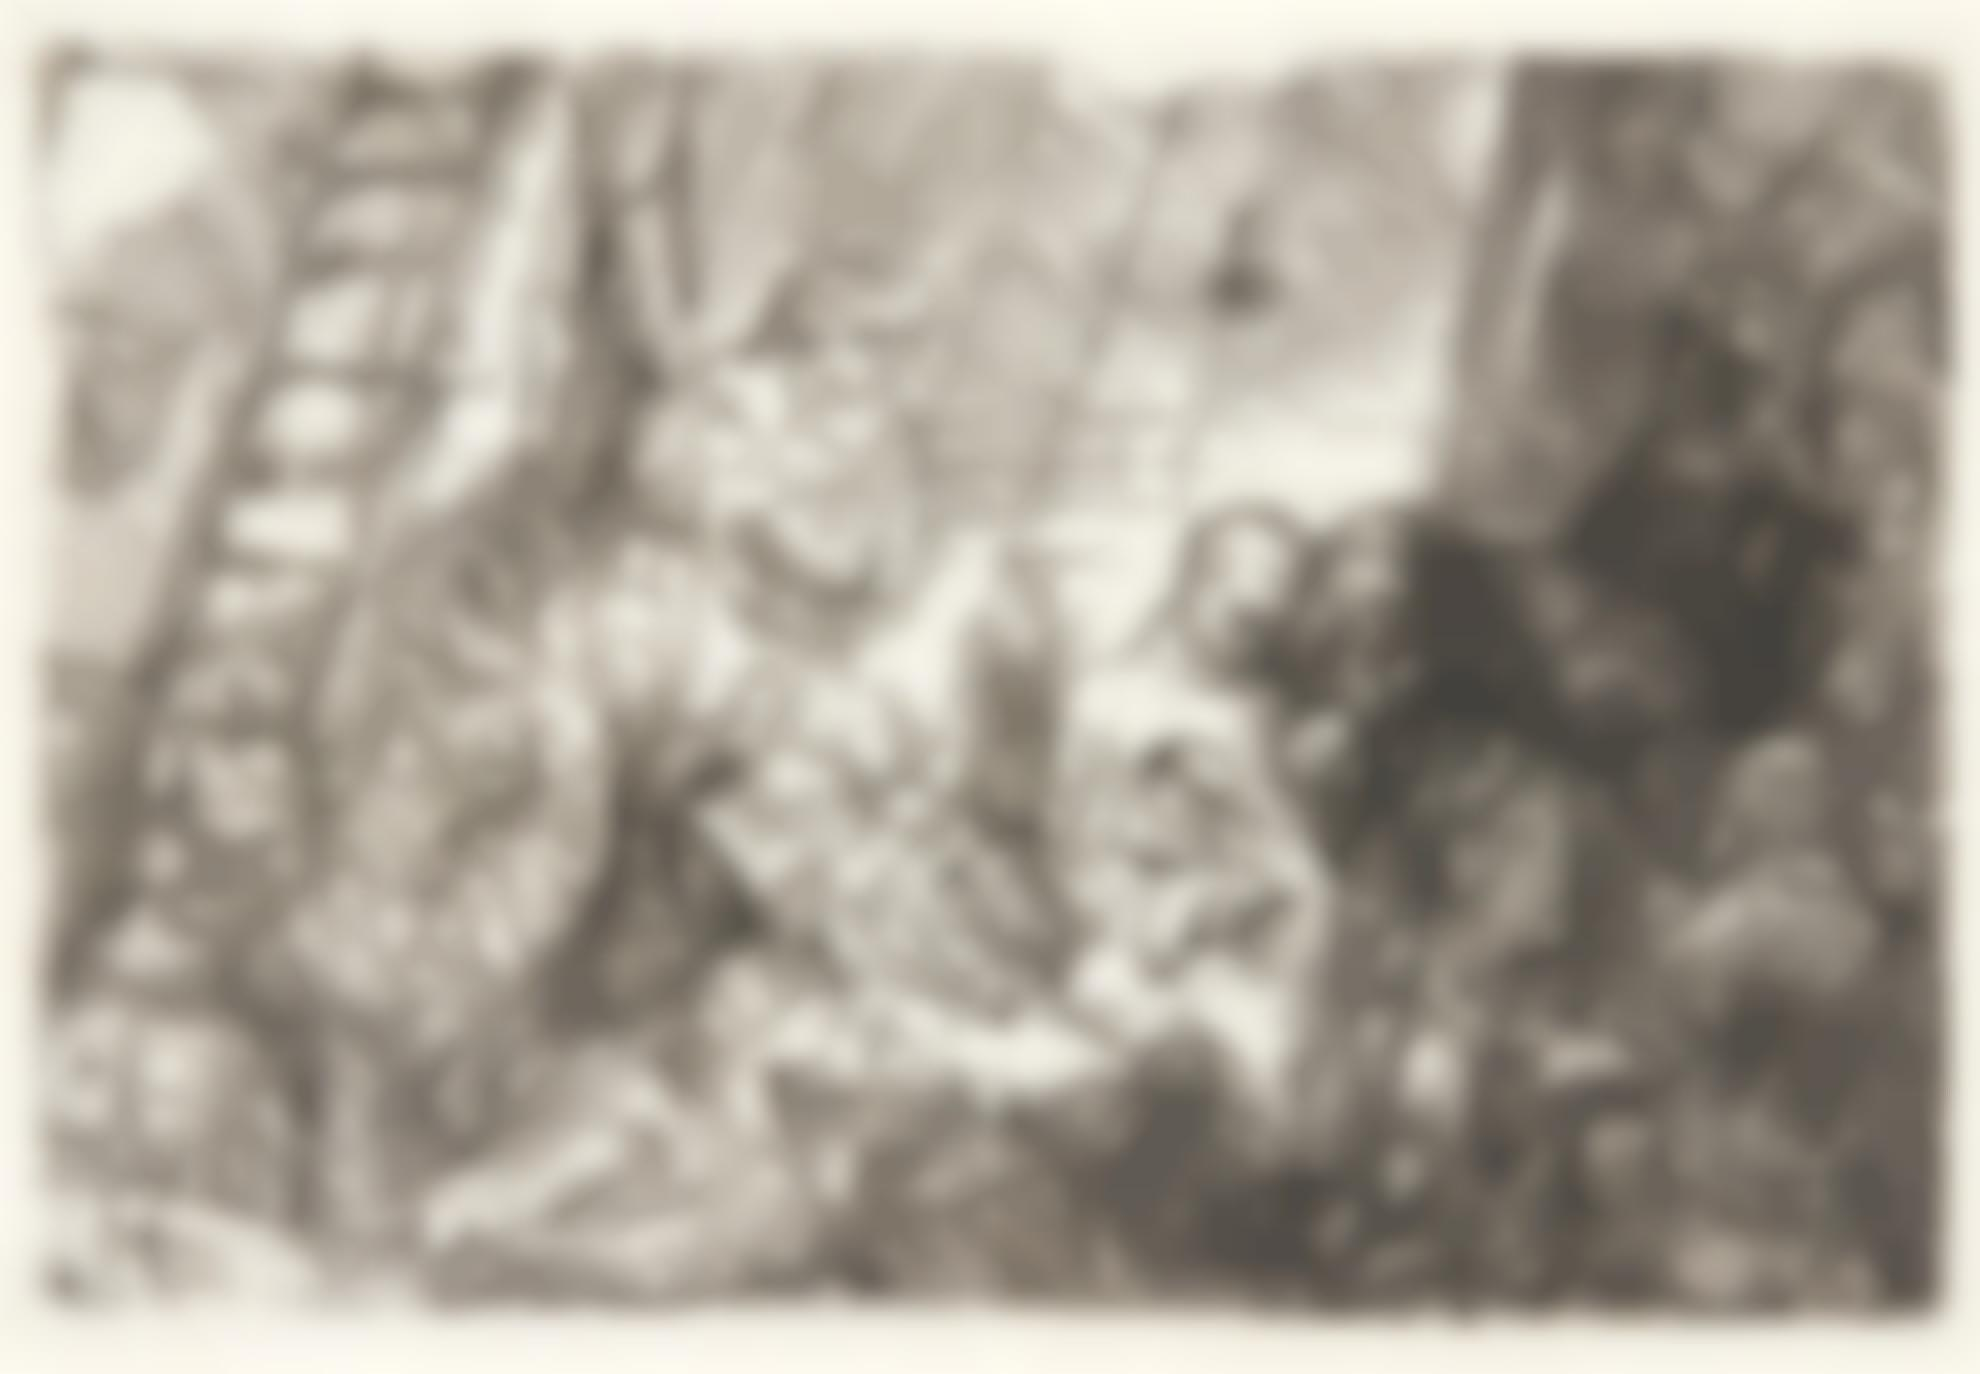 Rembrandt van Rijn-(i) The Circumcision In The Stable (B., Holl. 47; New Holl. 280; H. 274); (ii) The Adoration of the Shepherds: with the Lamp (New Holl. 279)-1654